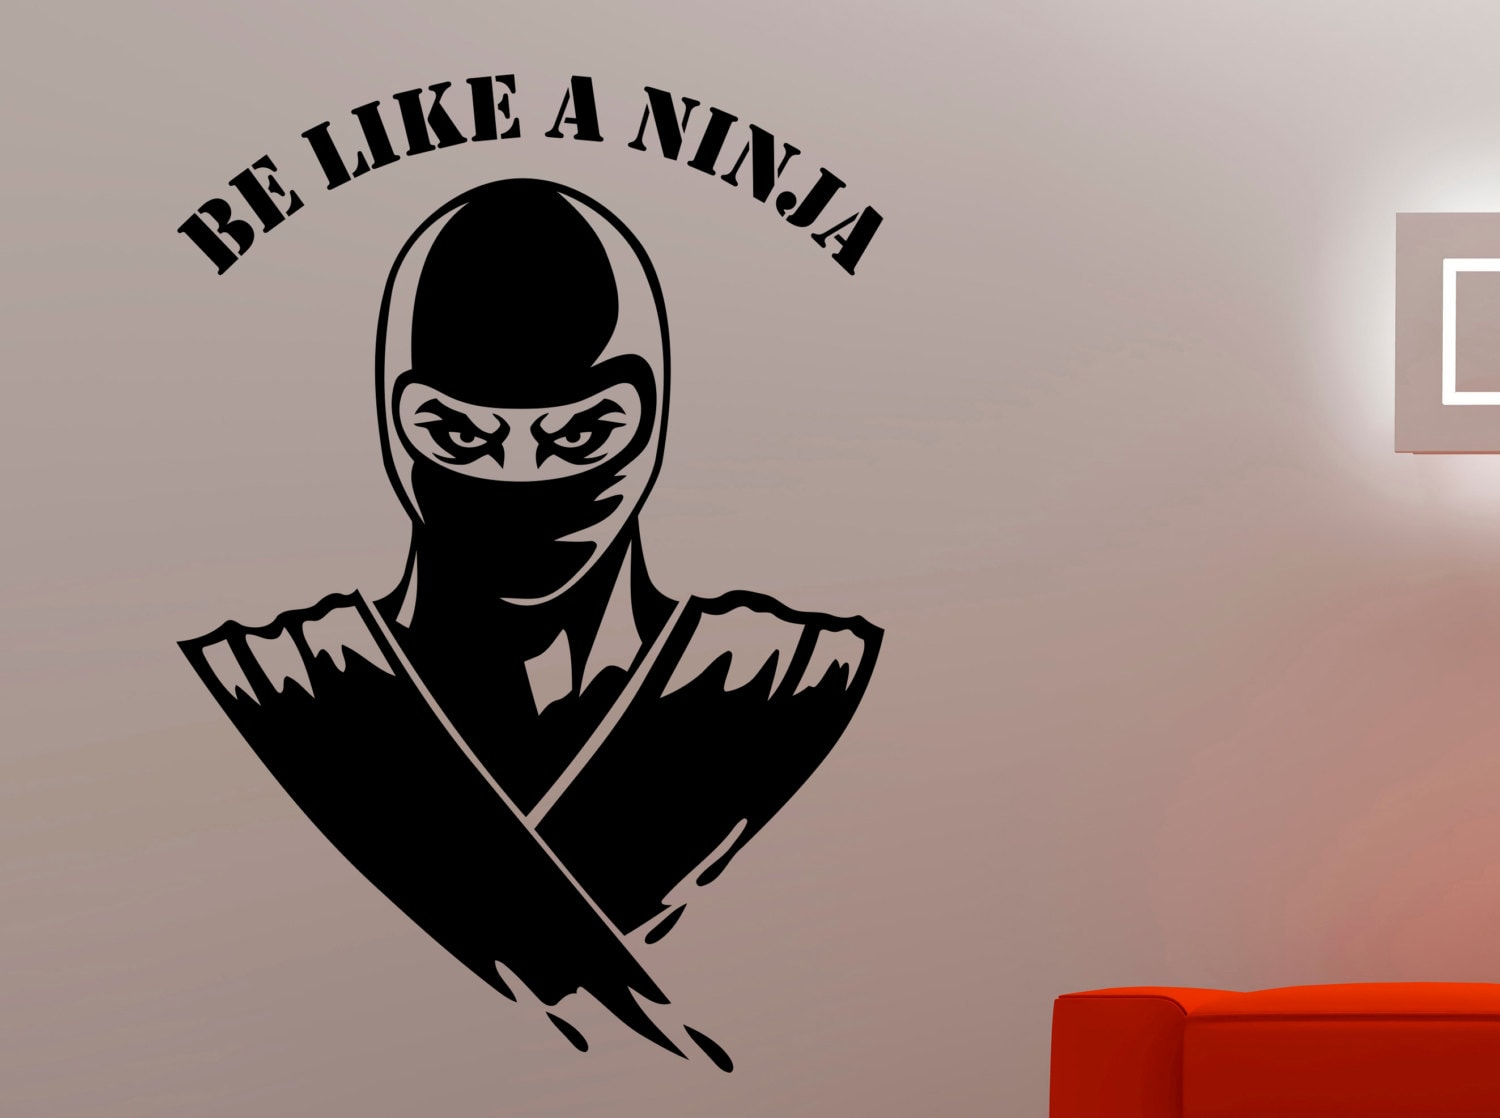 Ninja Wall Decal Ninja Warrior Sticker Home Interior Design